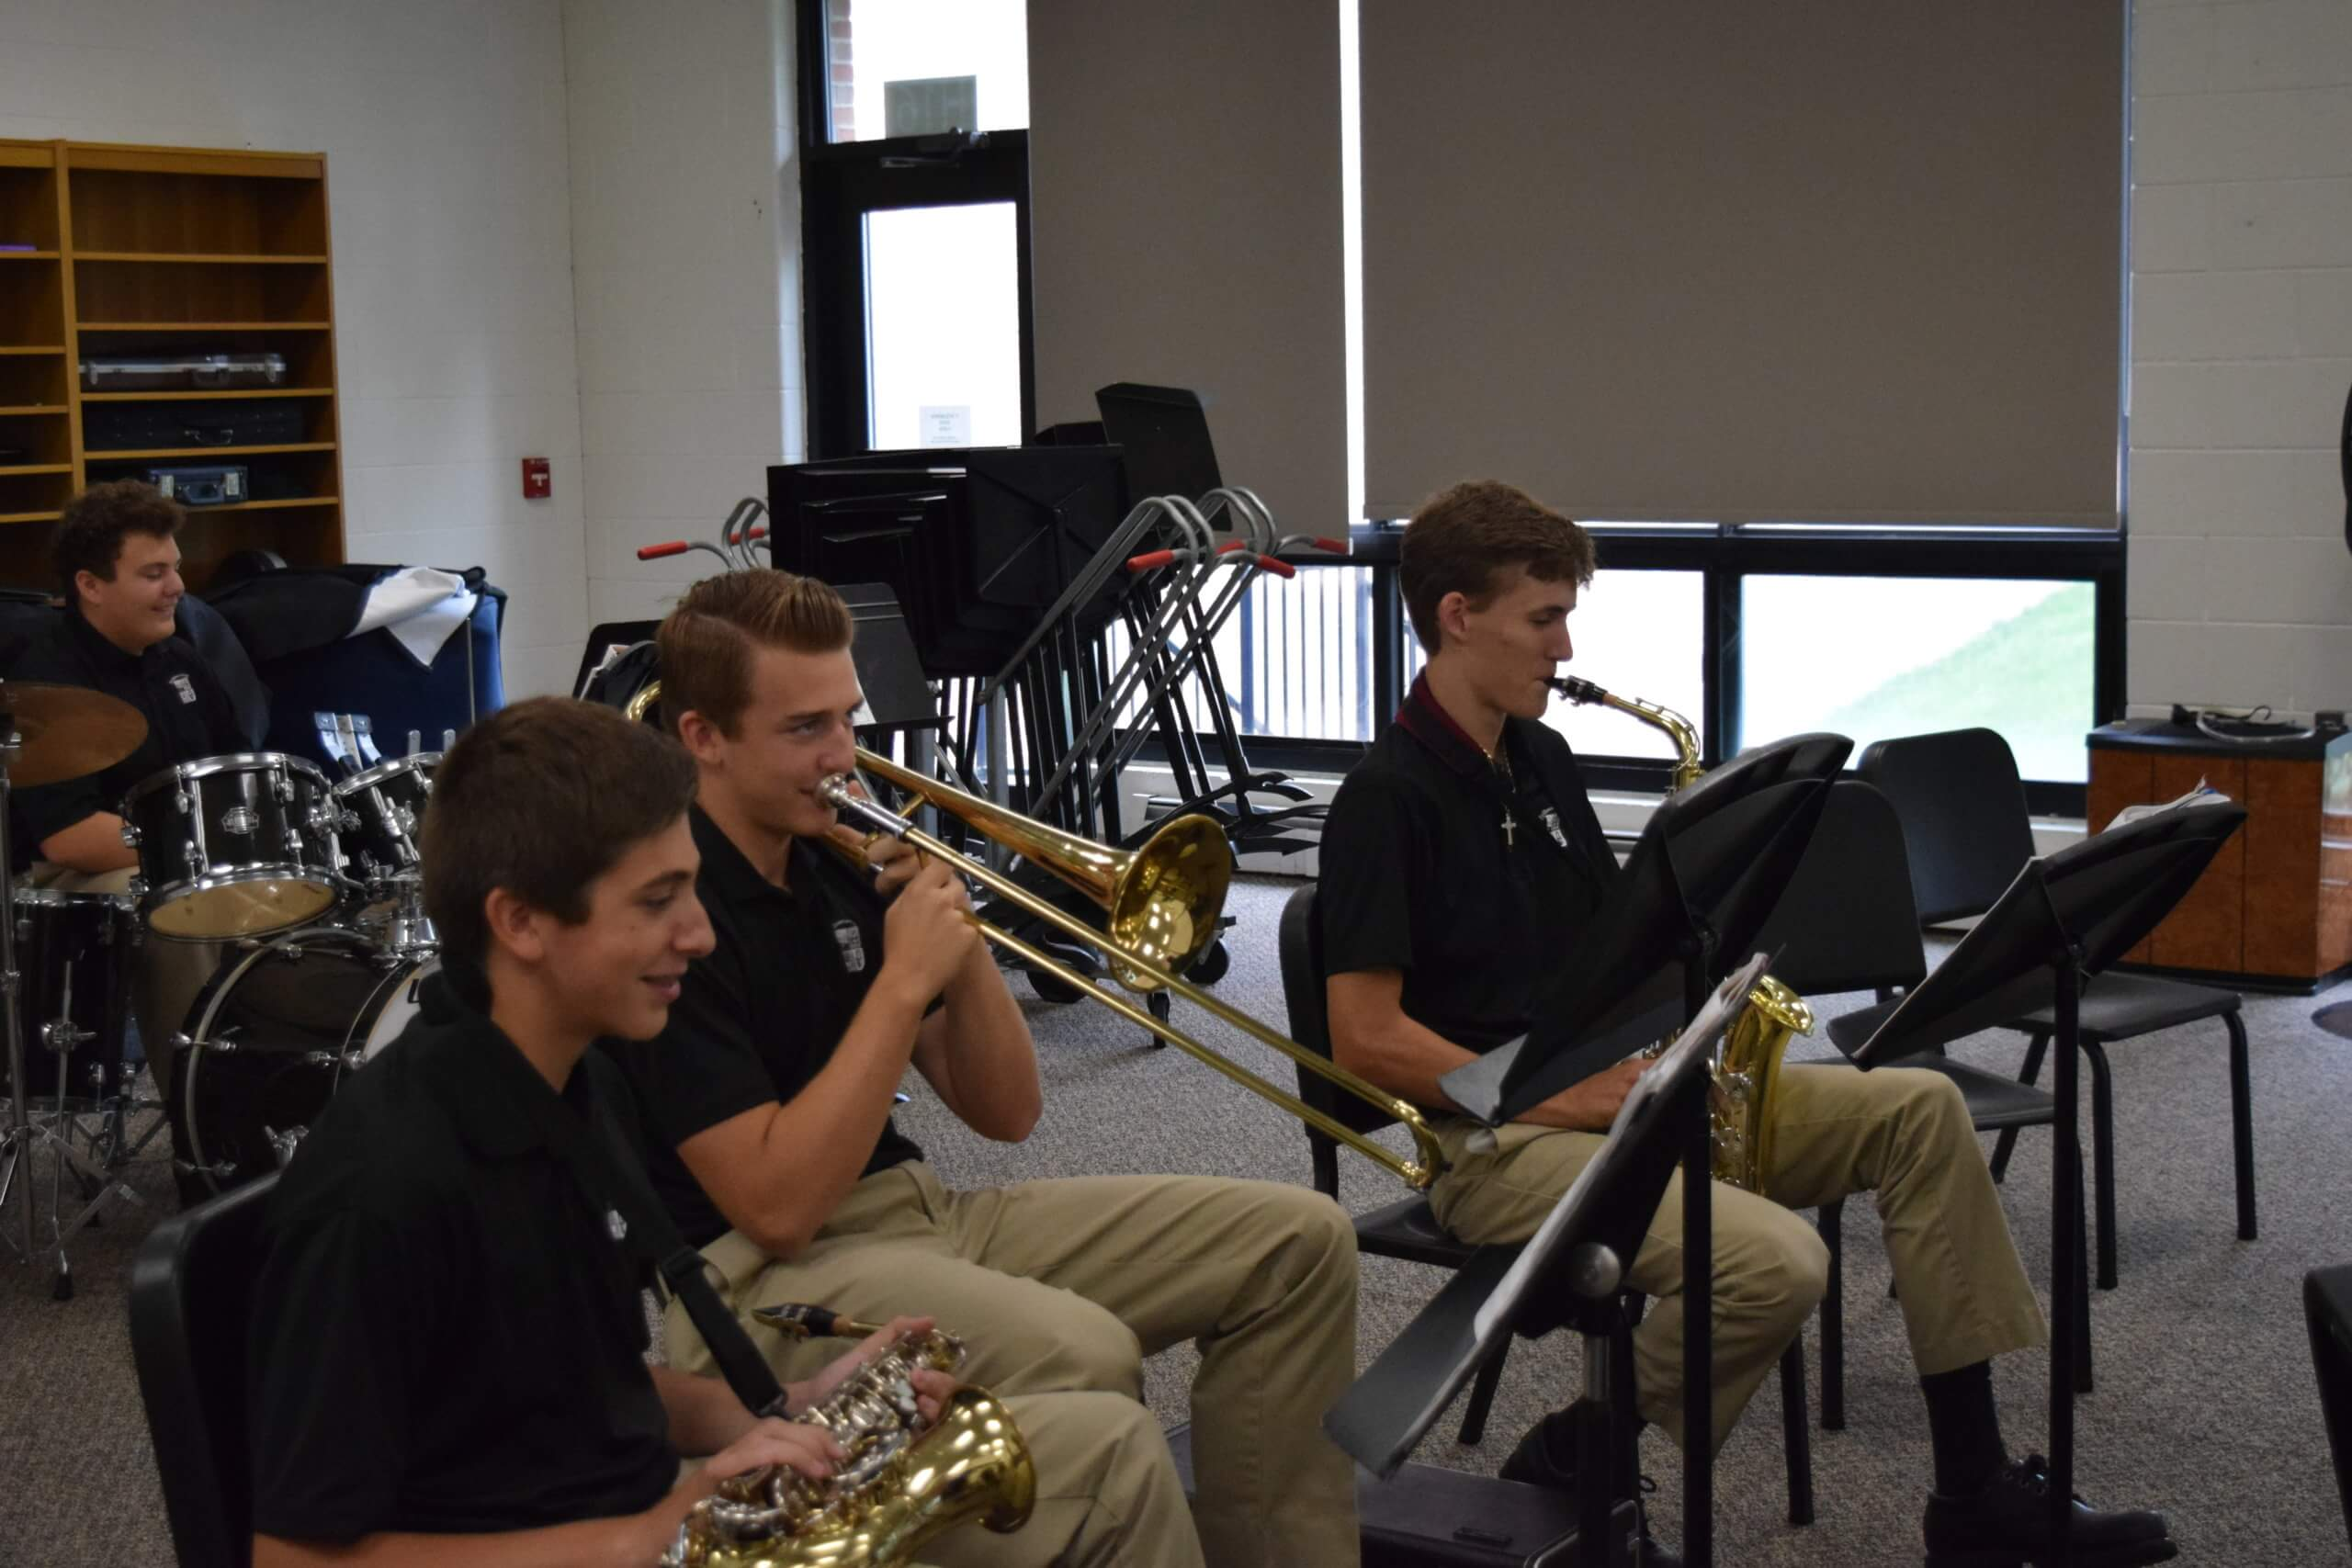 Student band practice